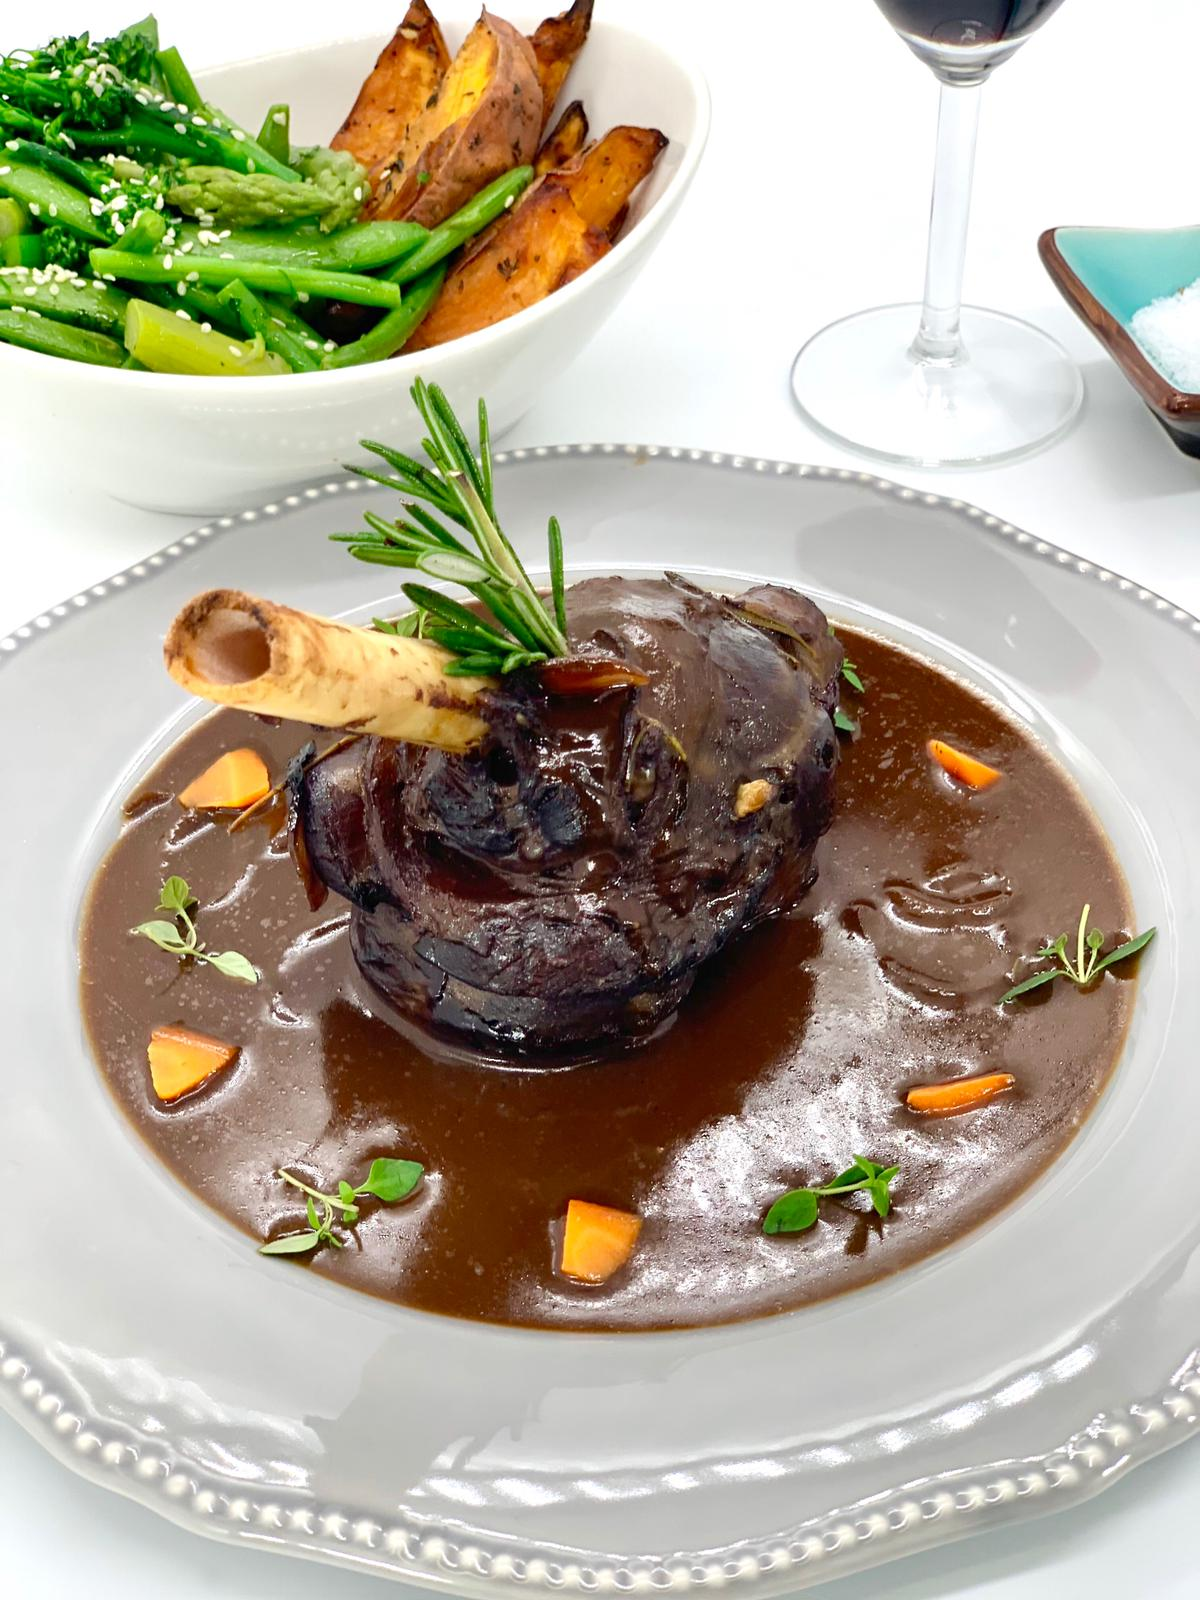 Slow cooked Lamb shank in Cotes du Rhone wine sauce (4 guests)